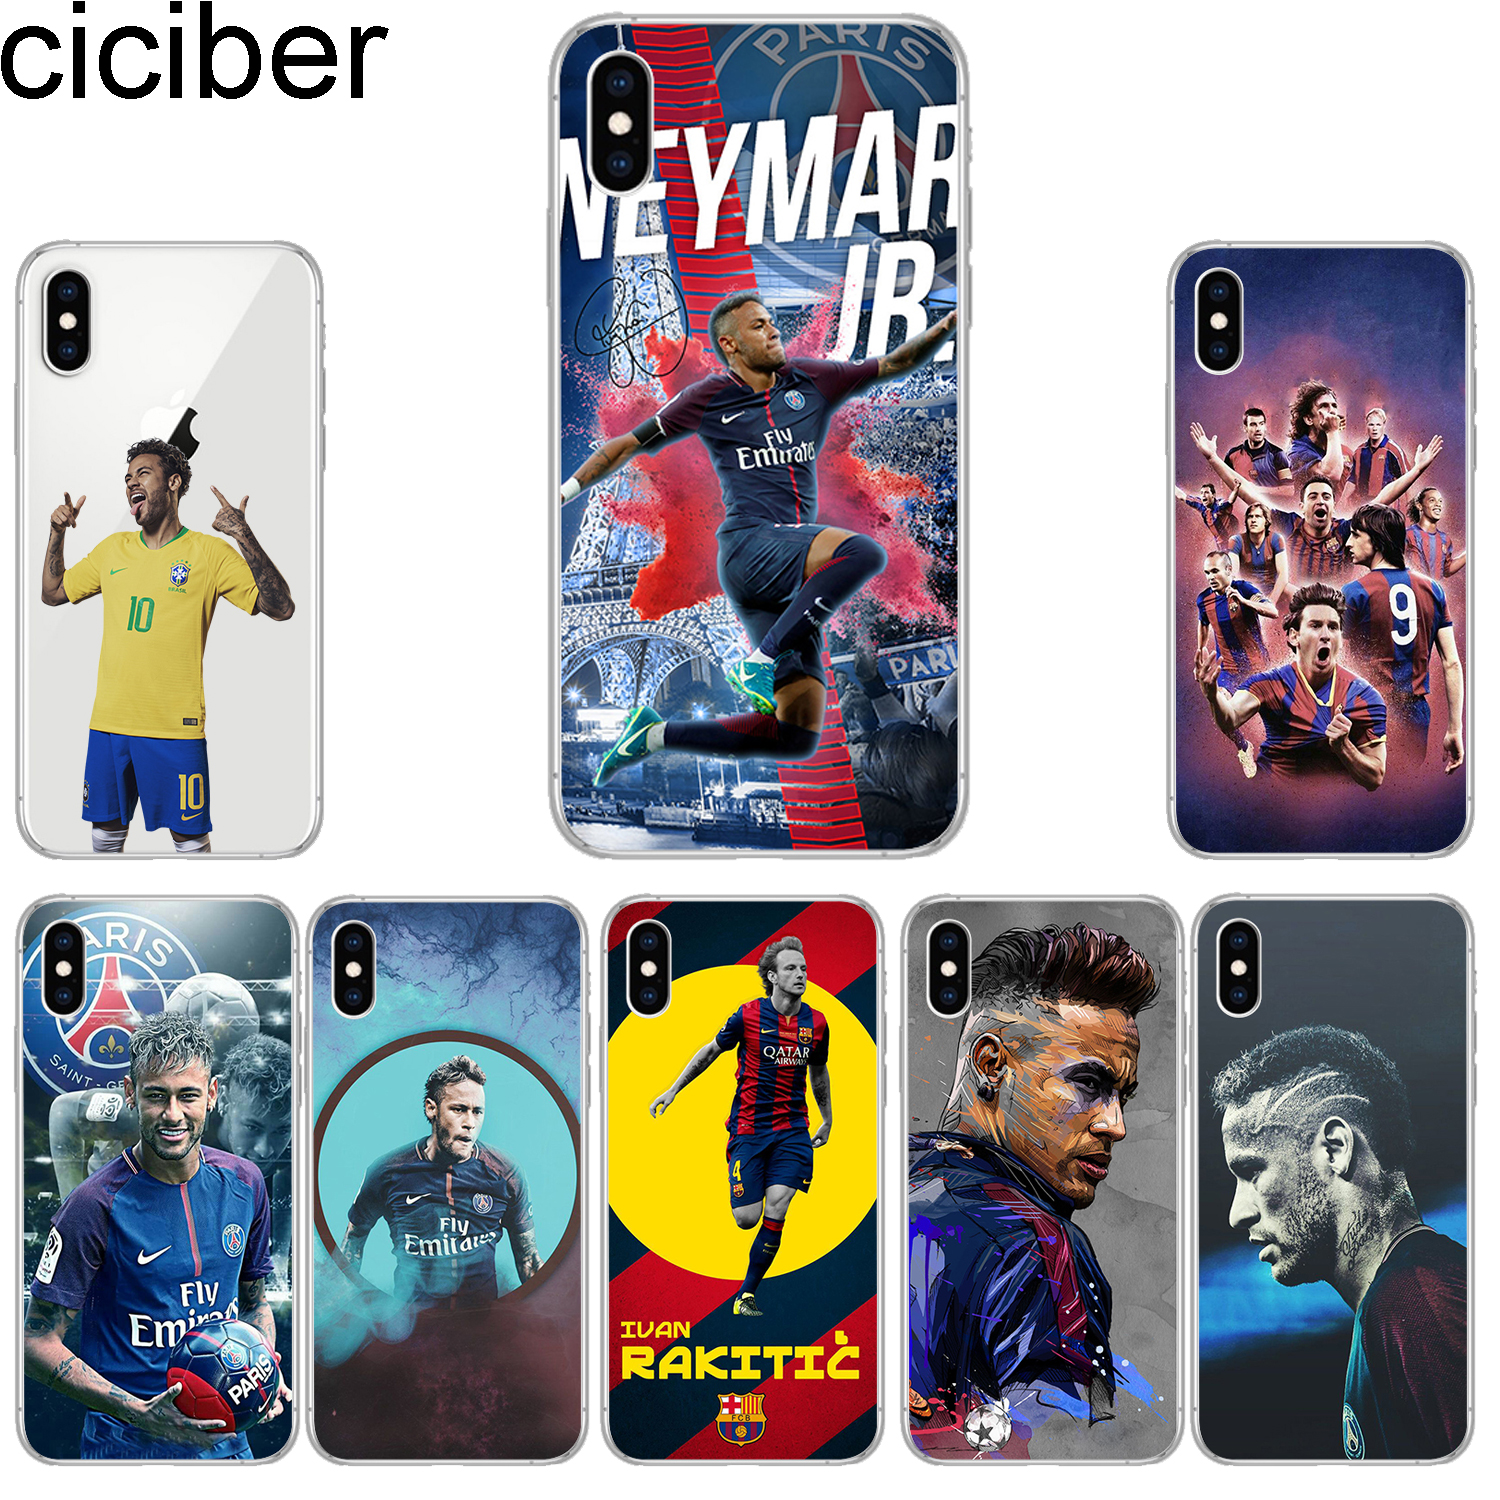 85b4b826fb9 ciciber Phone Cases for iPhone 8 7 6 6s Plus SE 5s Soft TPU Back Cover for  iPhone X Xs XR XS Max Case Neymar Coque Capa Fundas